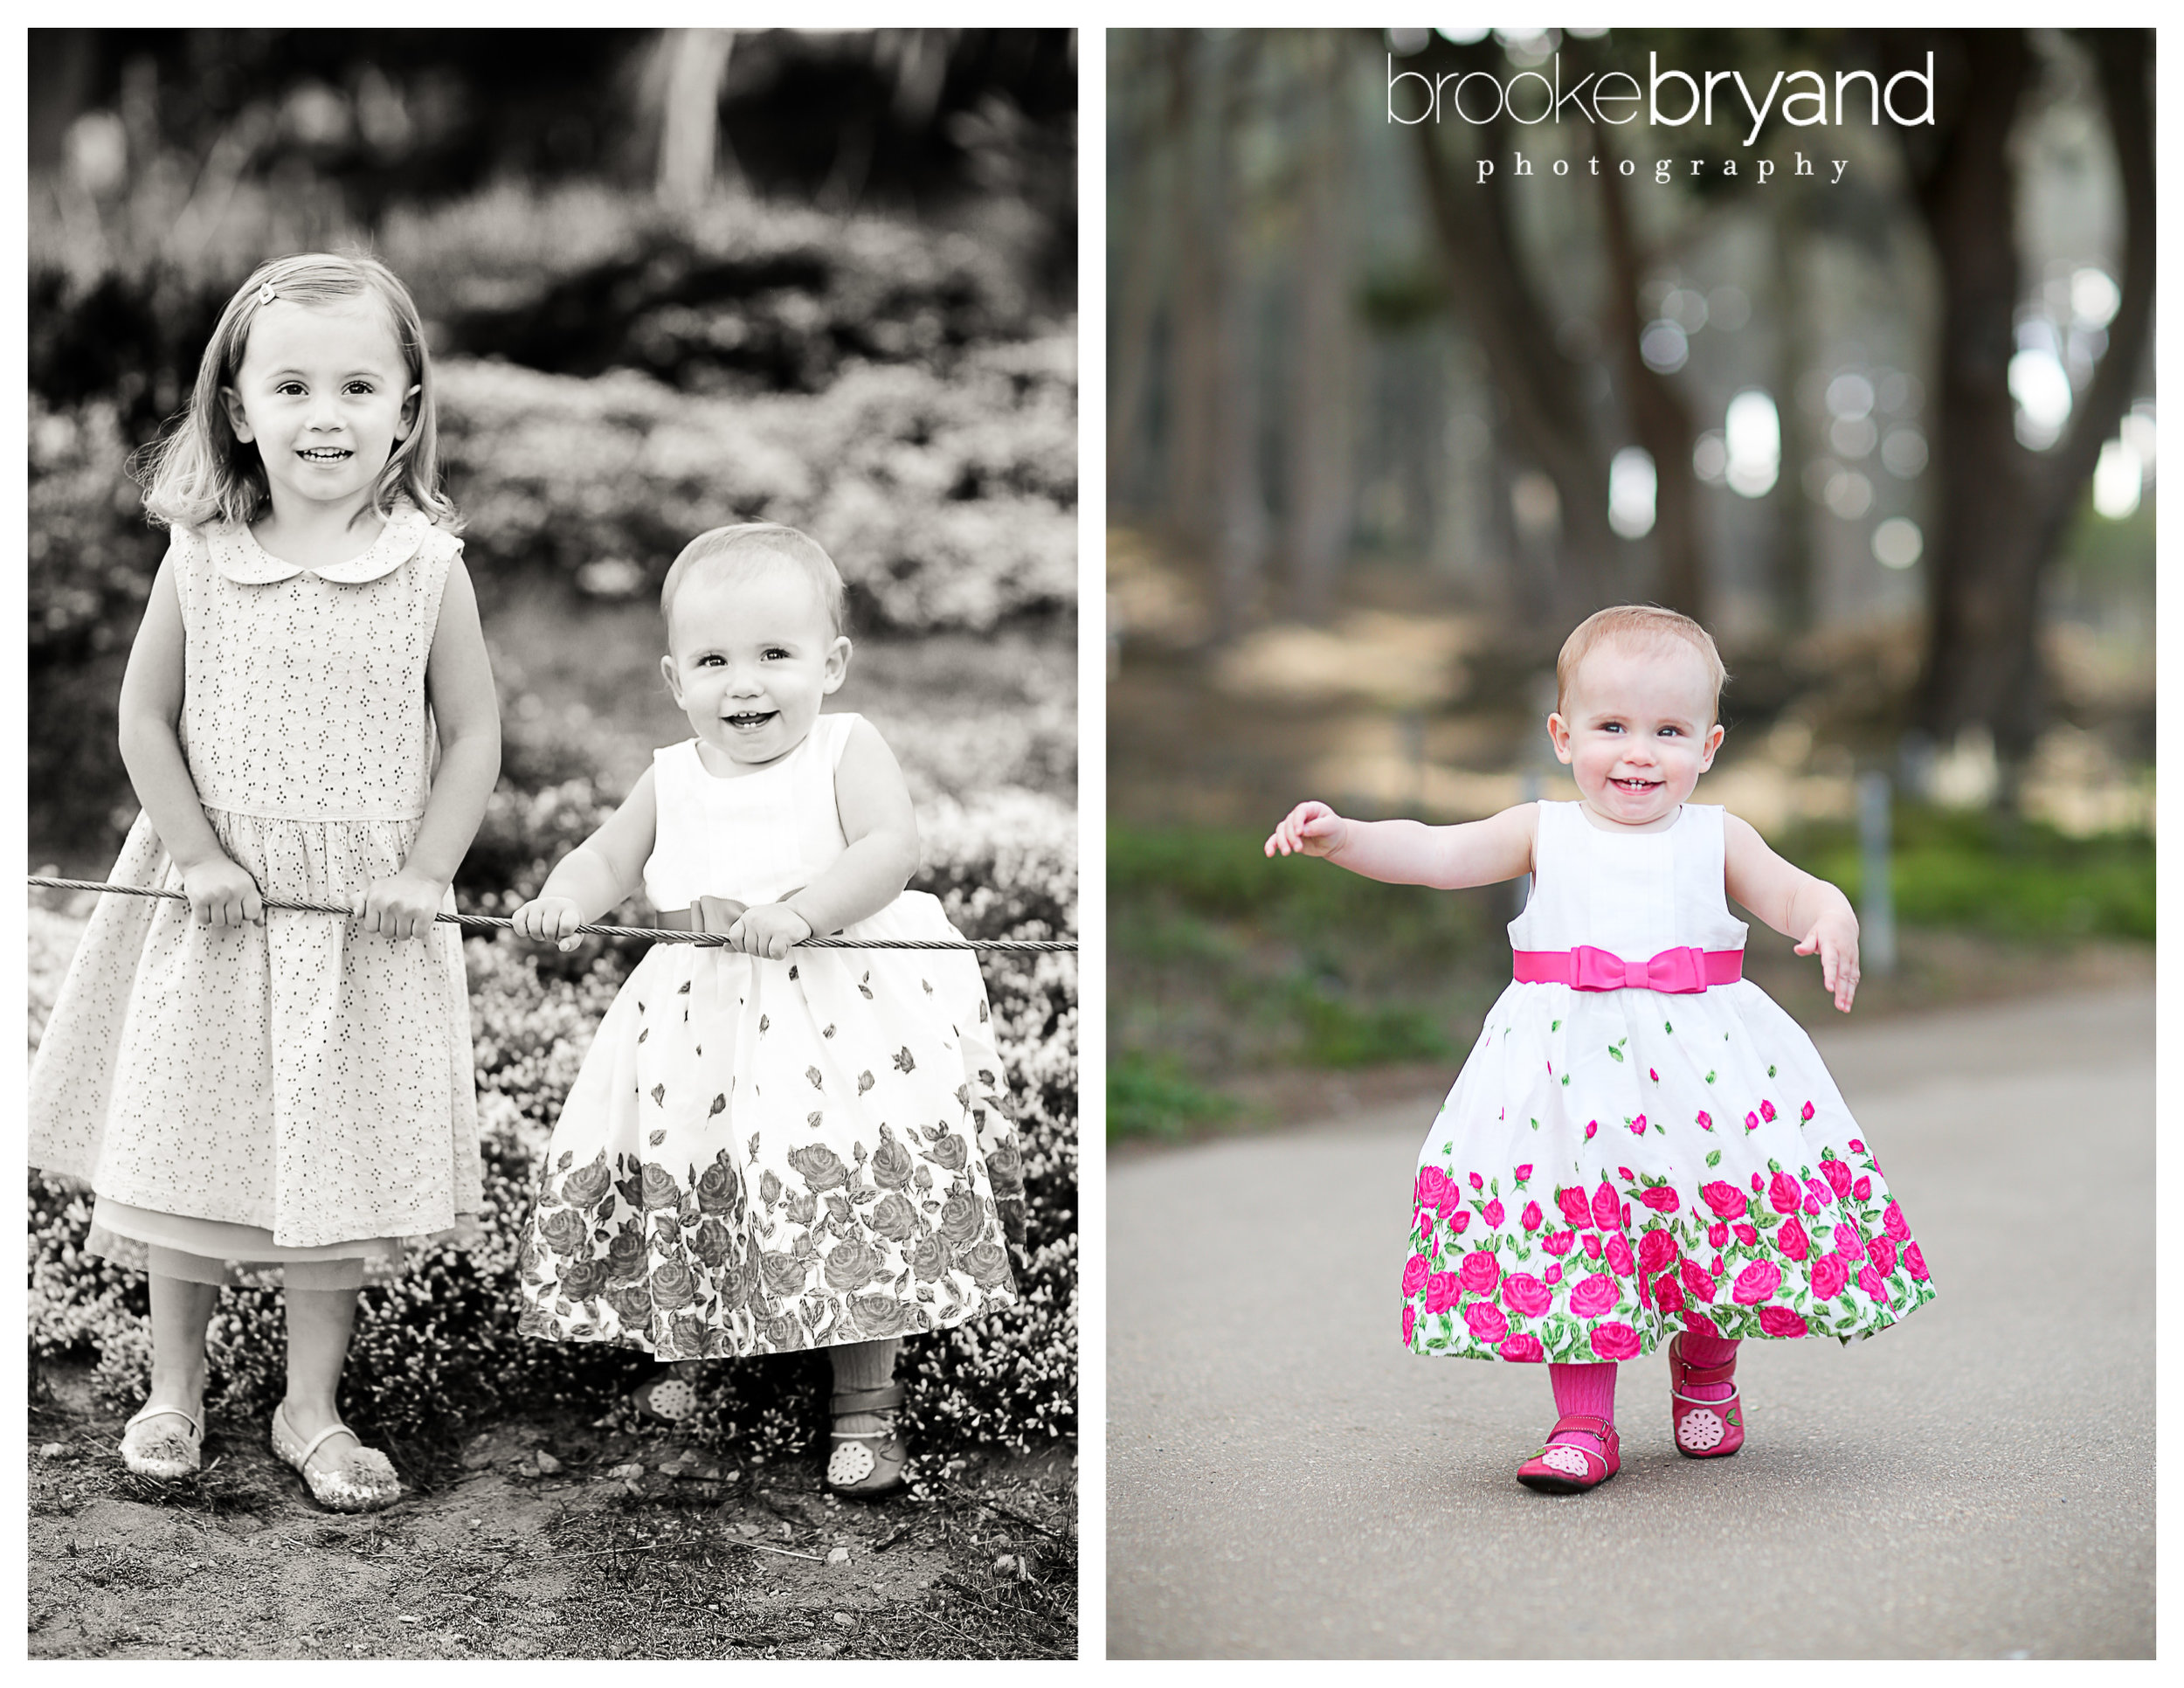 2up-morgan-brooke-bryand-photography-san-francisco-family-photographer-lands-end-family-photos-2.jpg